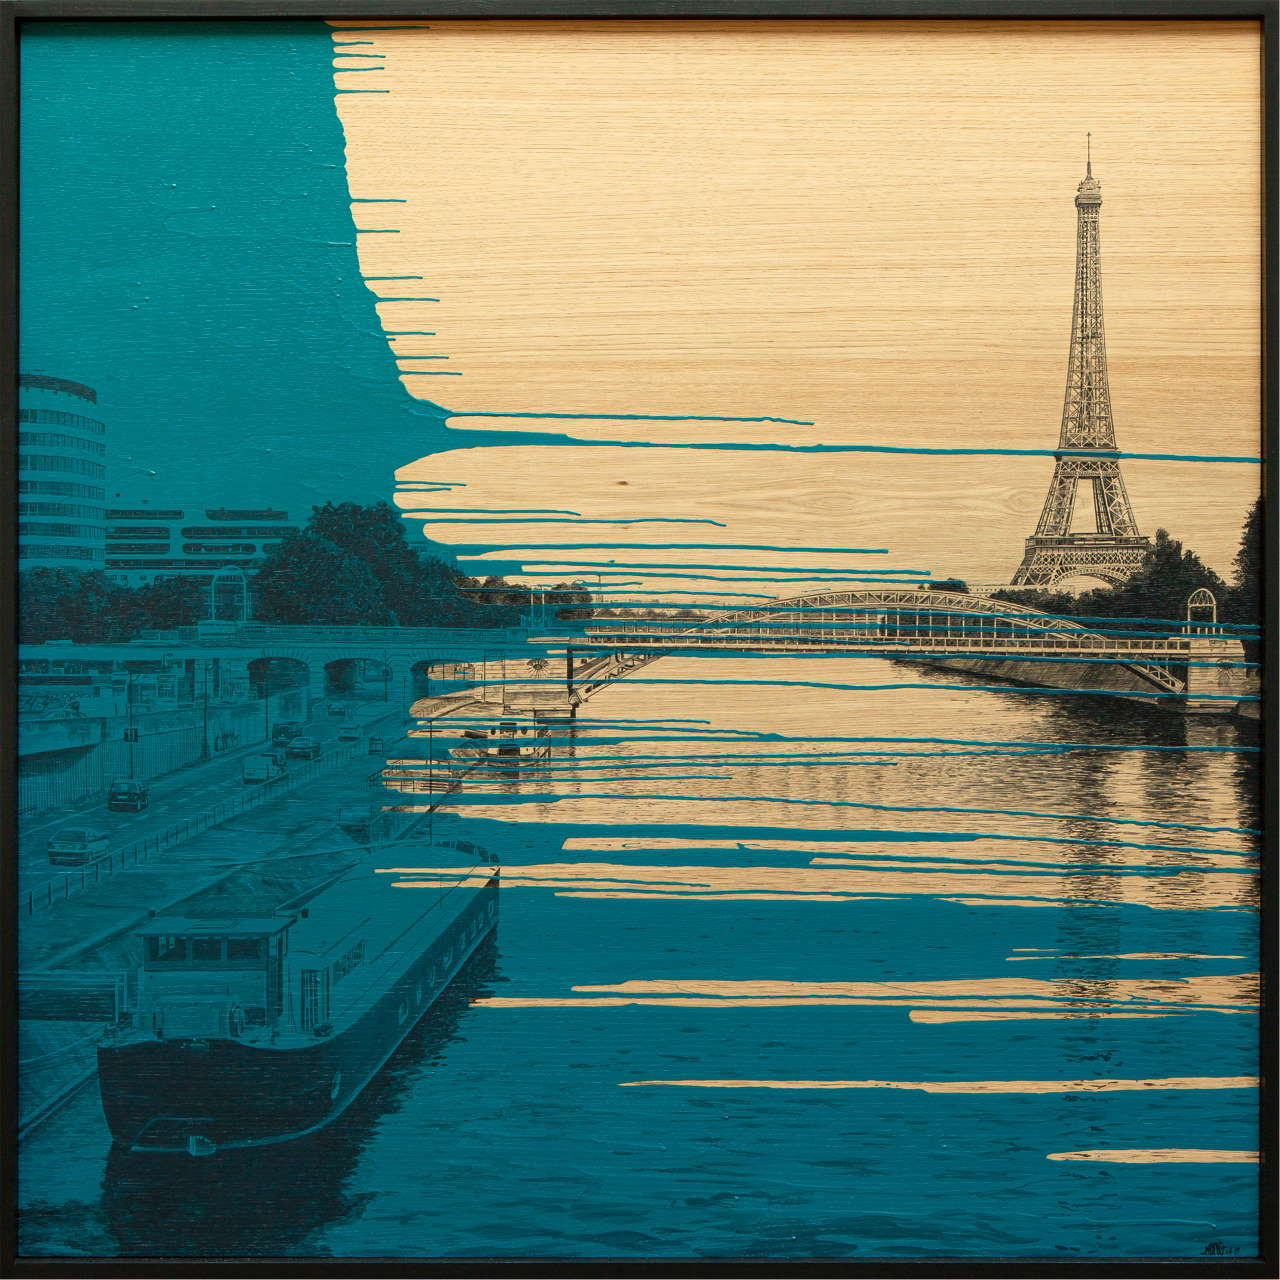 Laurent Minguet, Seine de Paris, 2019. Acrylic on Oak panel, 120 x 120 cm. © Laurent Minguet.